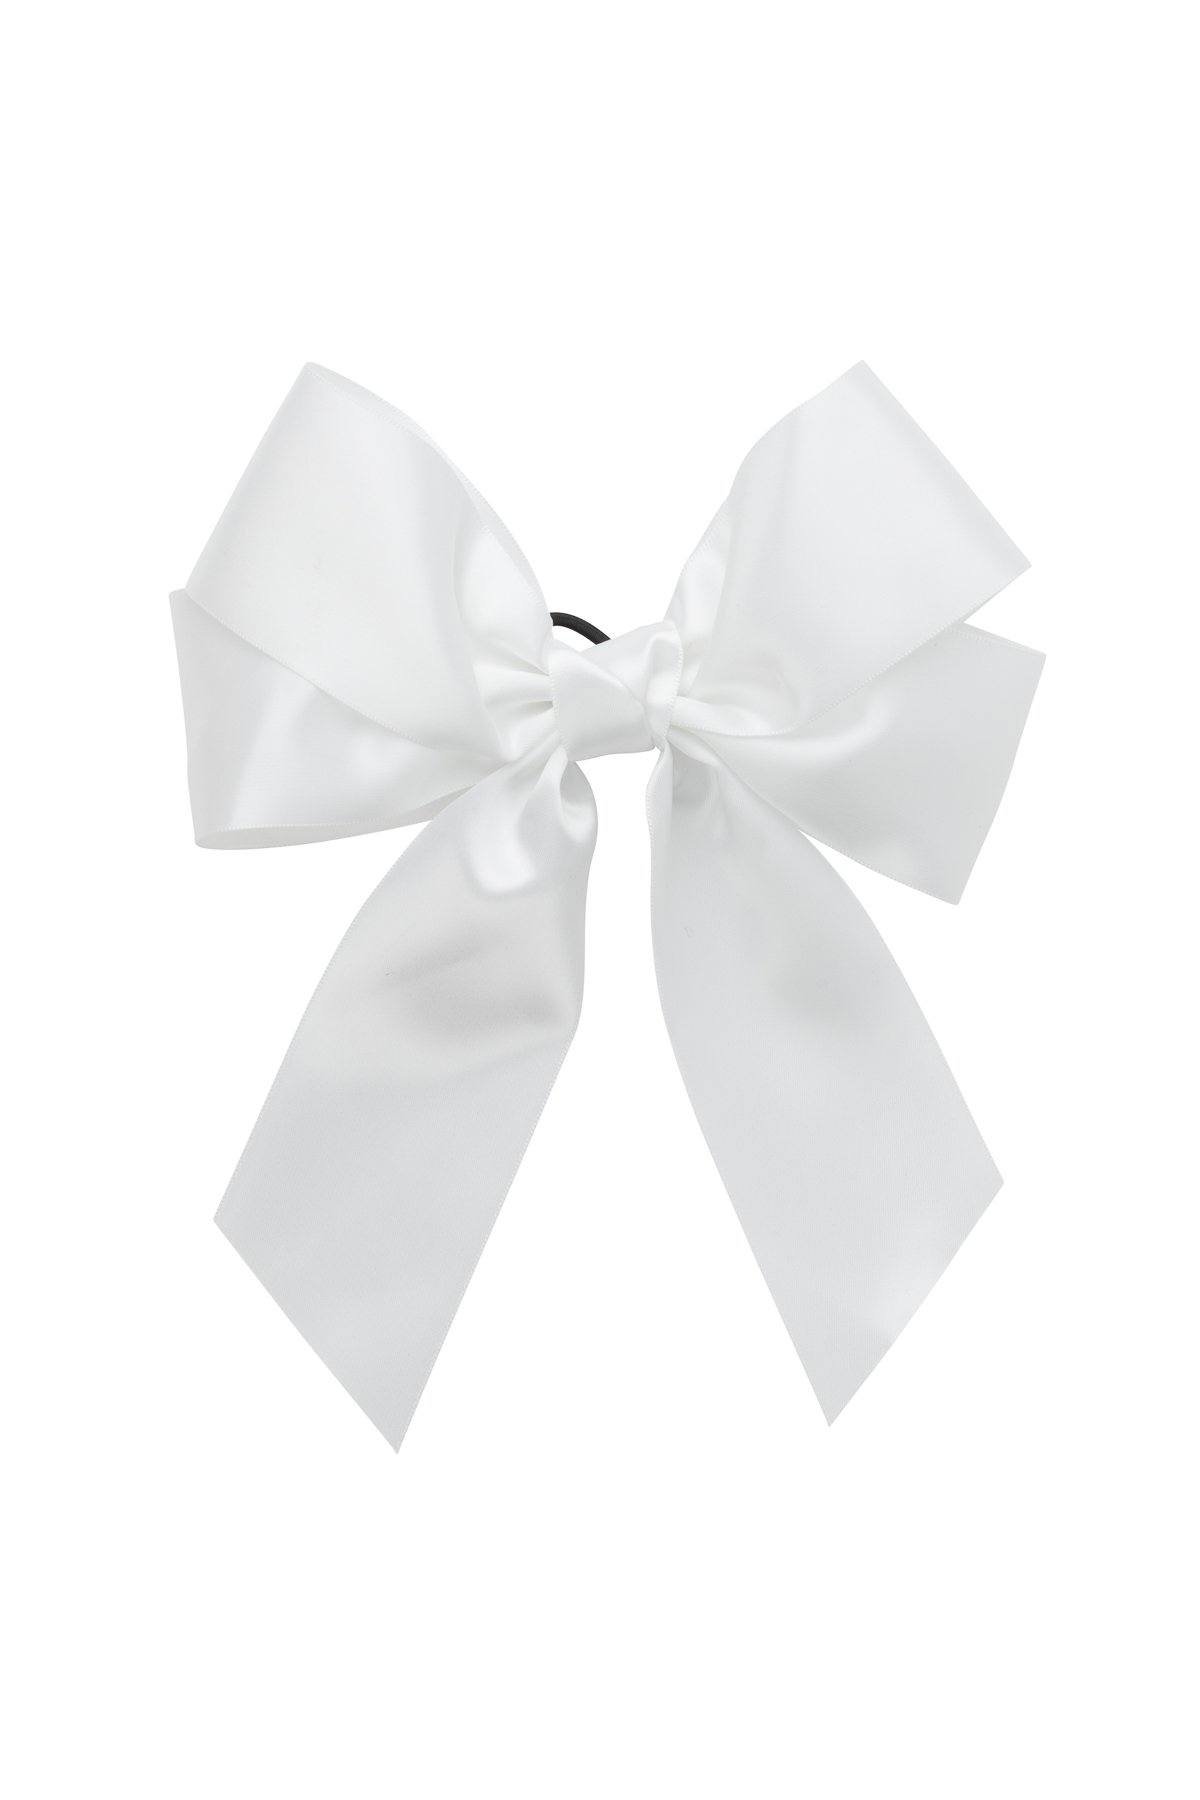 Oversized Bow Pony Clip White Bows Childrens Accessories Hard Headbands